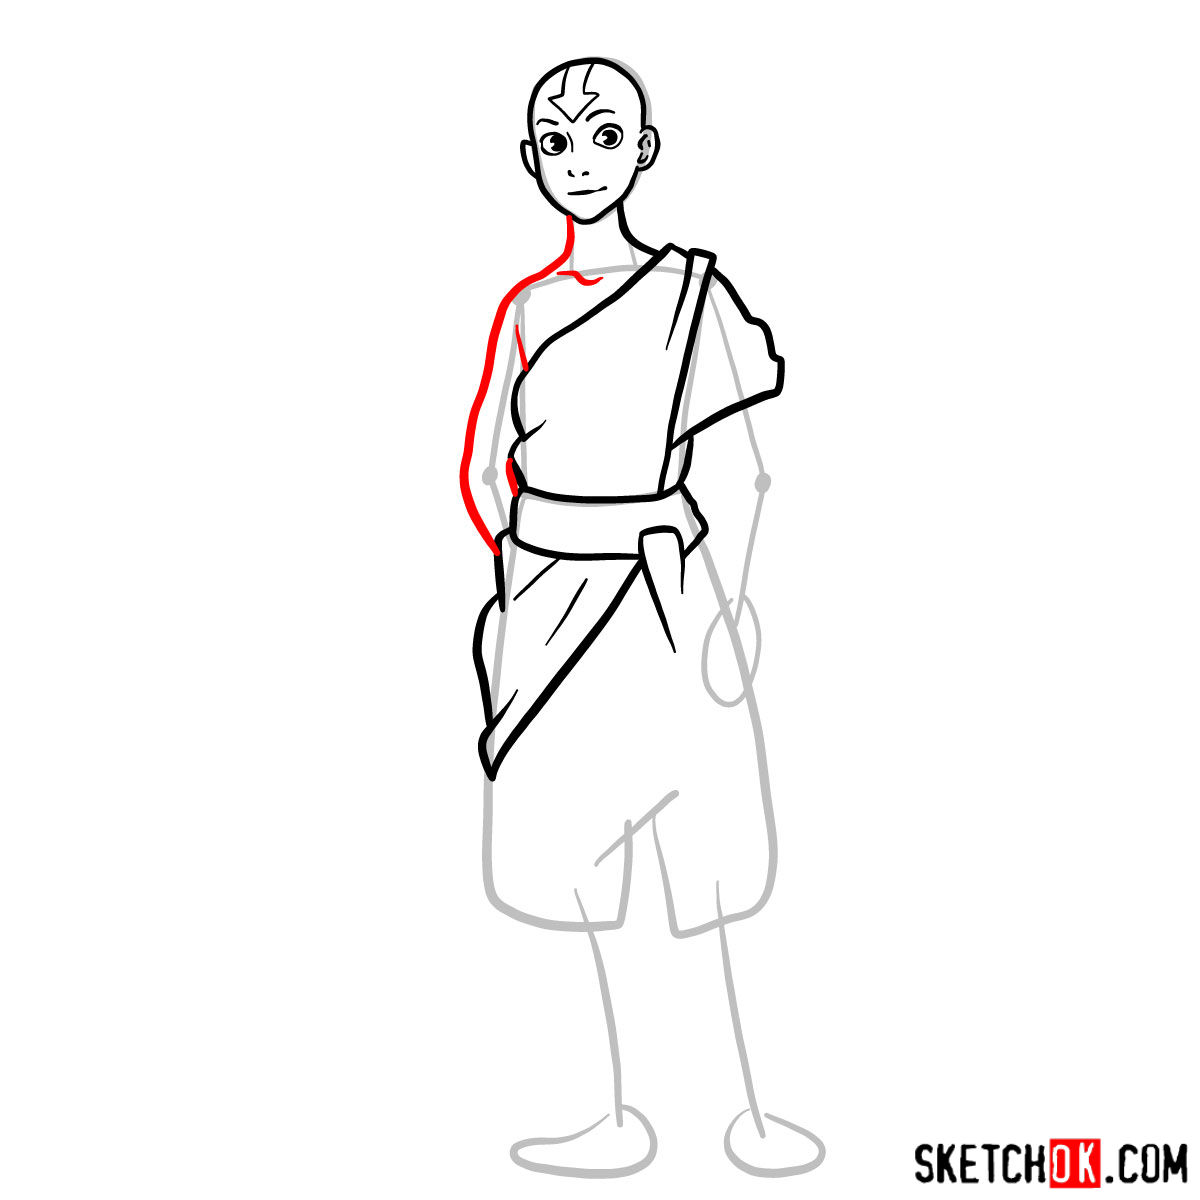 Avatar Aang Drawings: How To Draw Avatar Aang In Full Growth